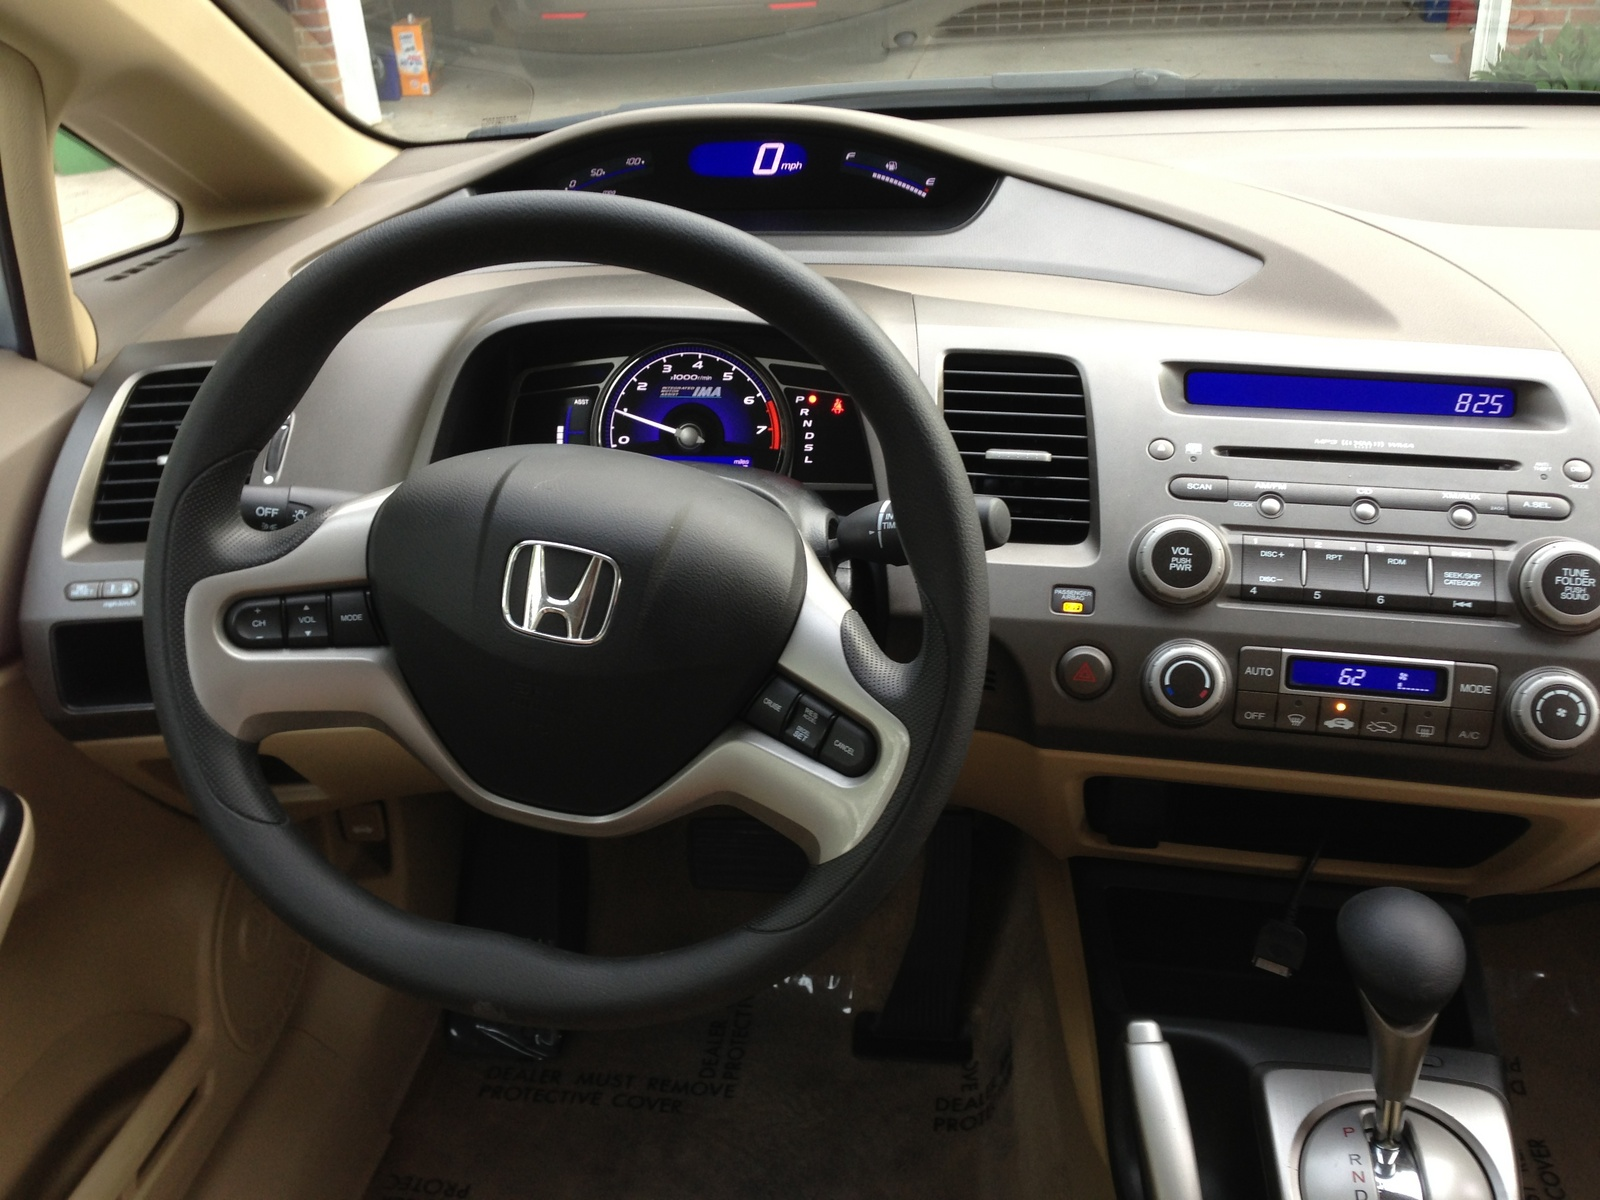 2006 honda civic interior pictures cargurus